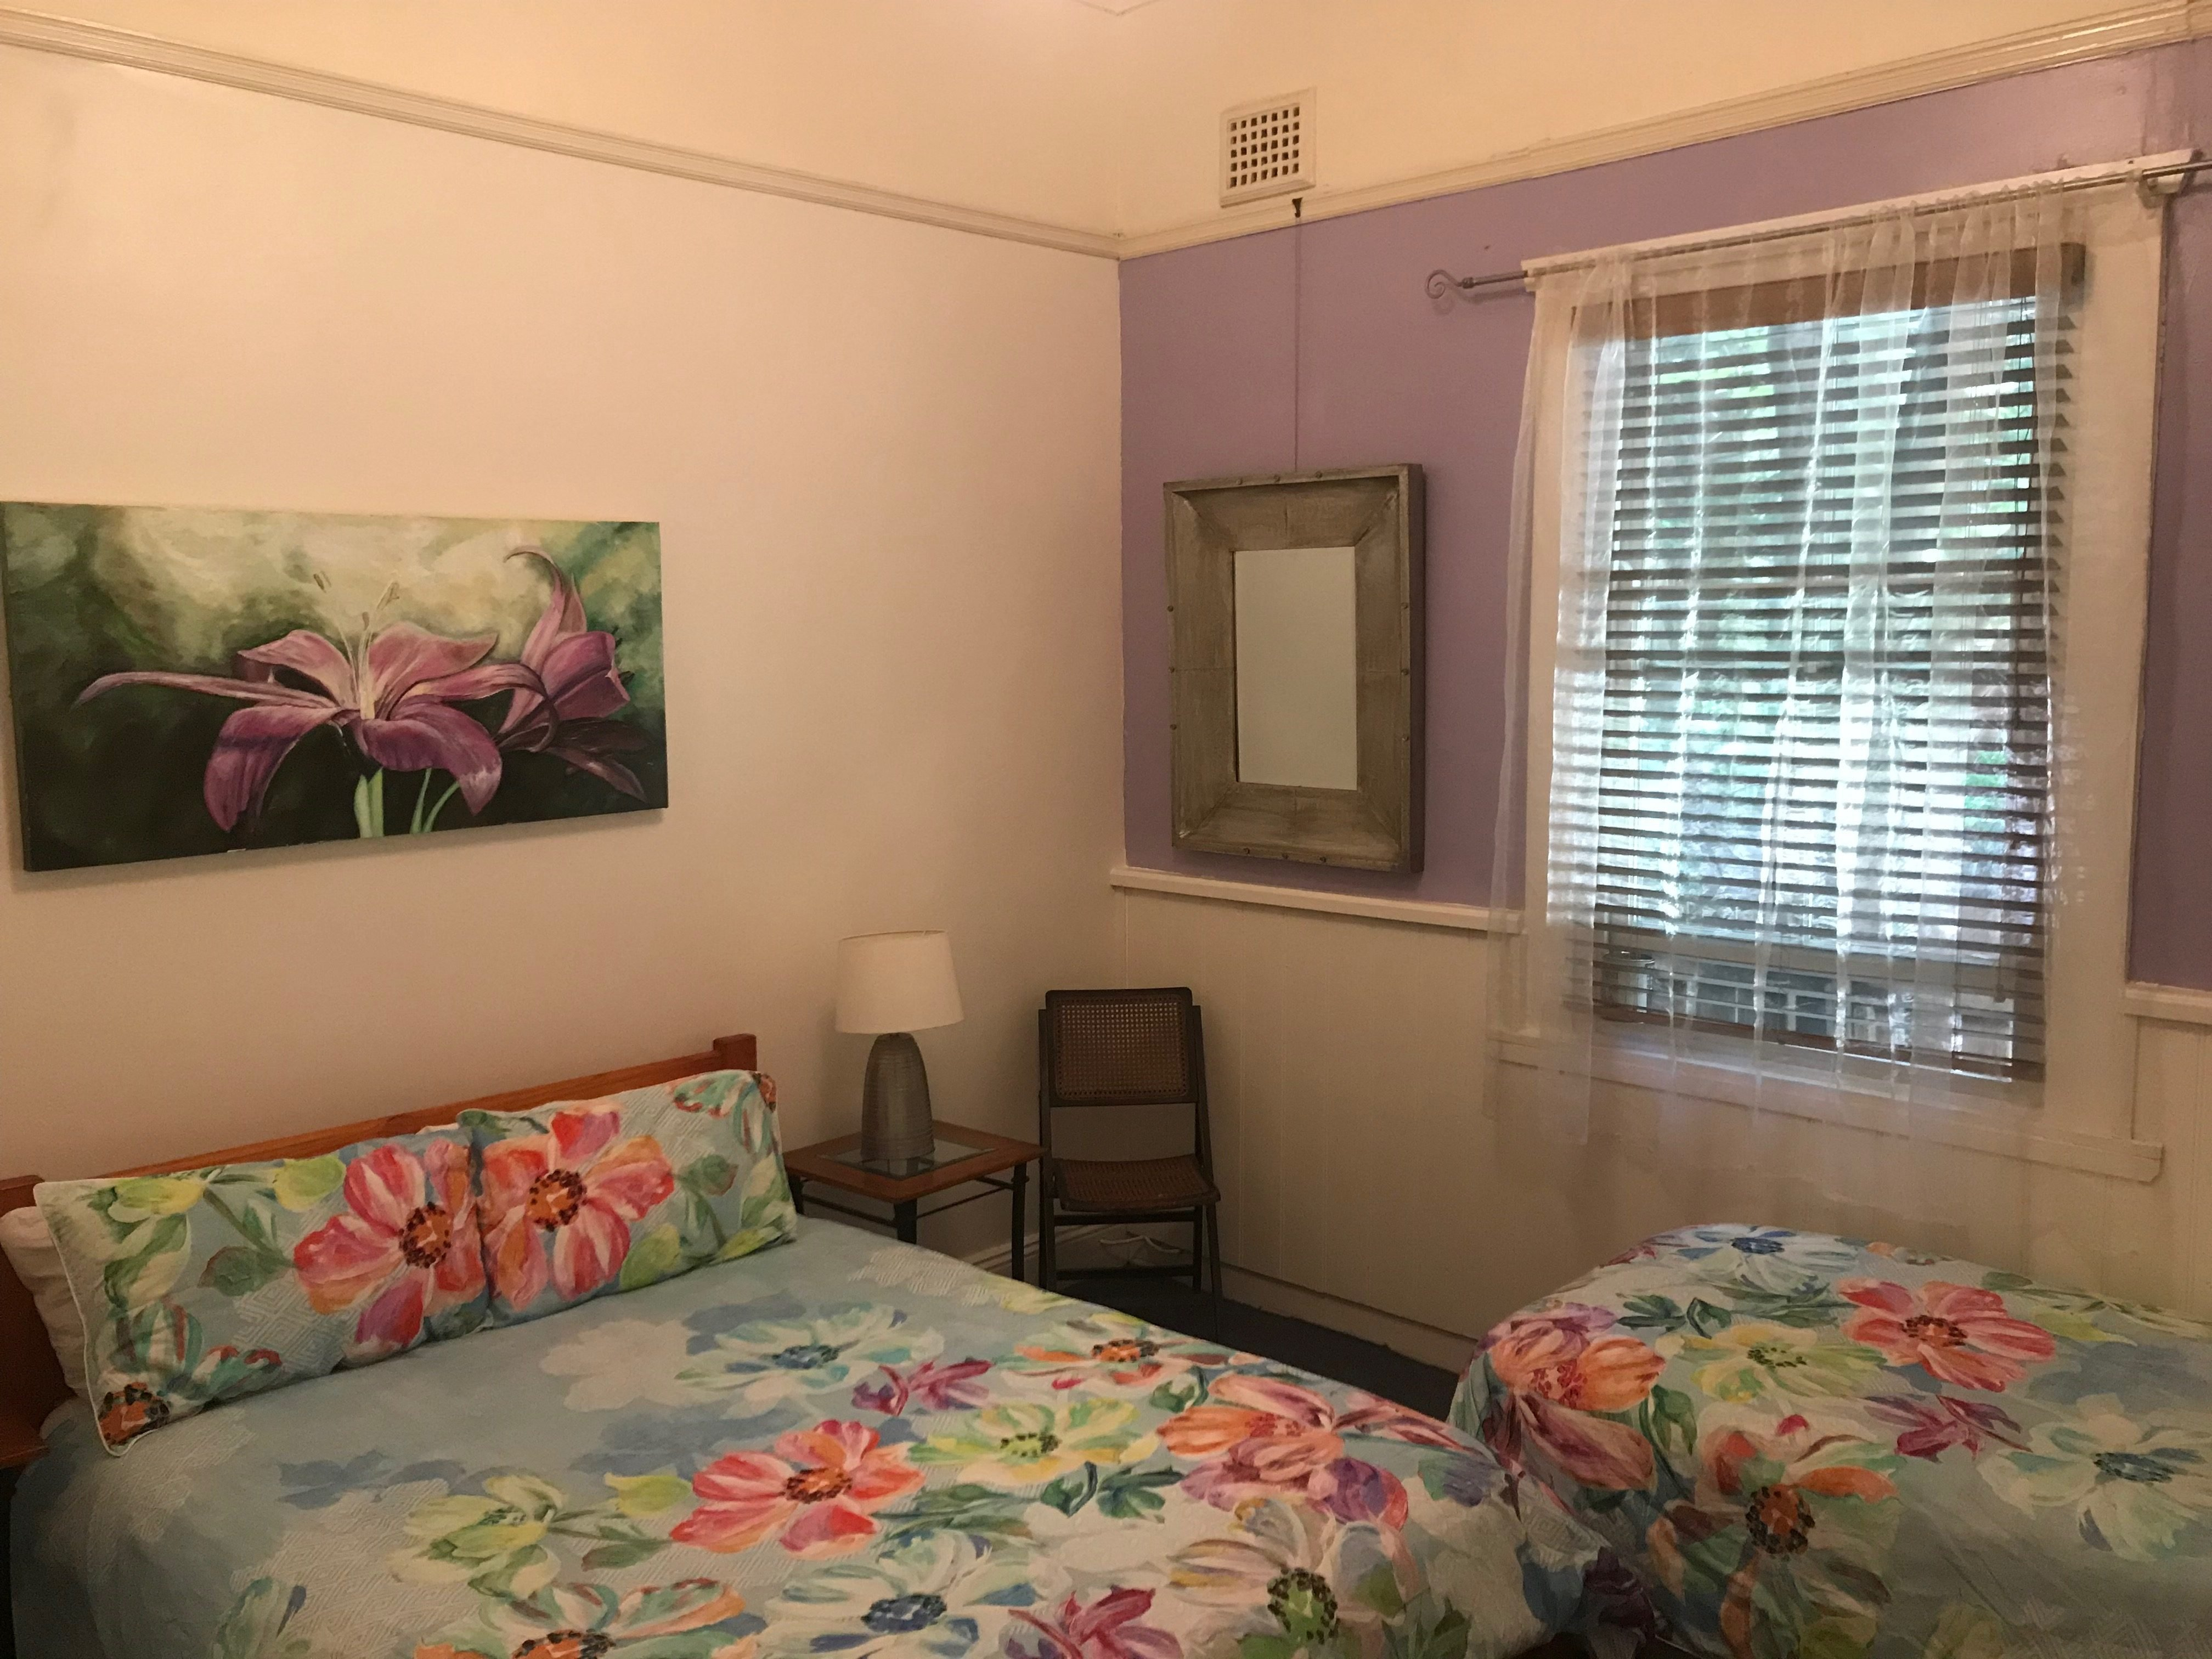 http://Well%20appointed%20triple%20room%20at%20the%20flying%20fox%20hostel%20blue%20mountains%20katoomba